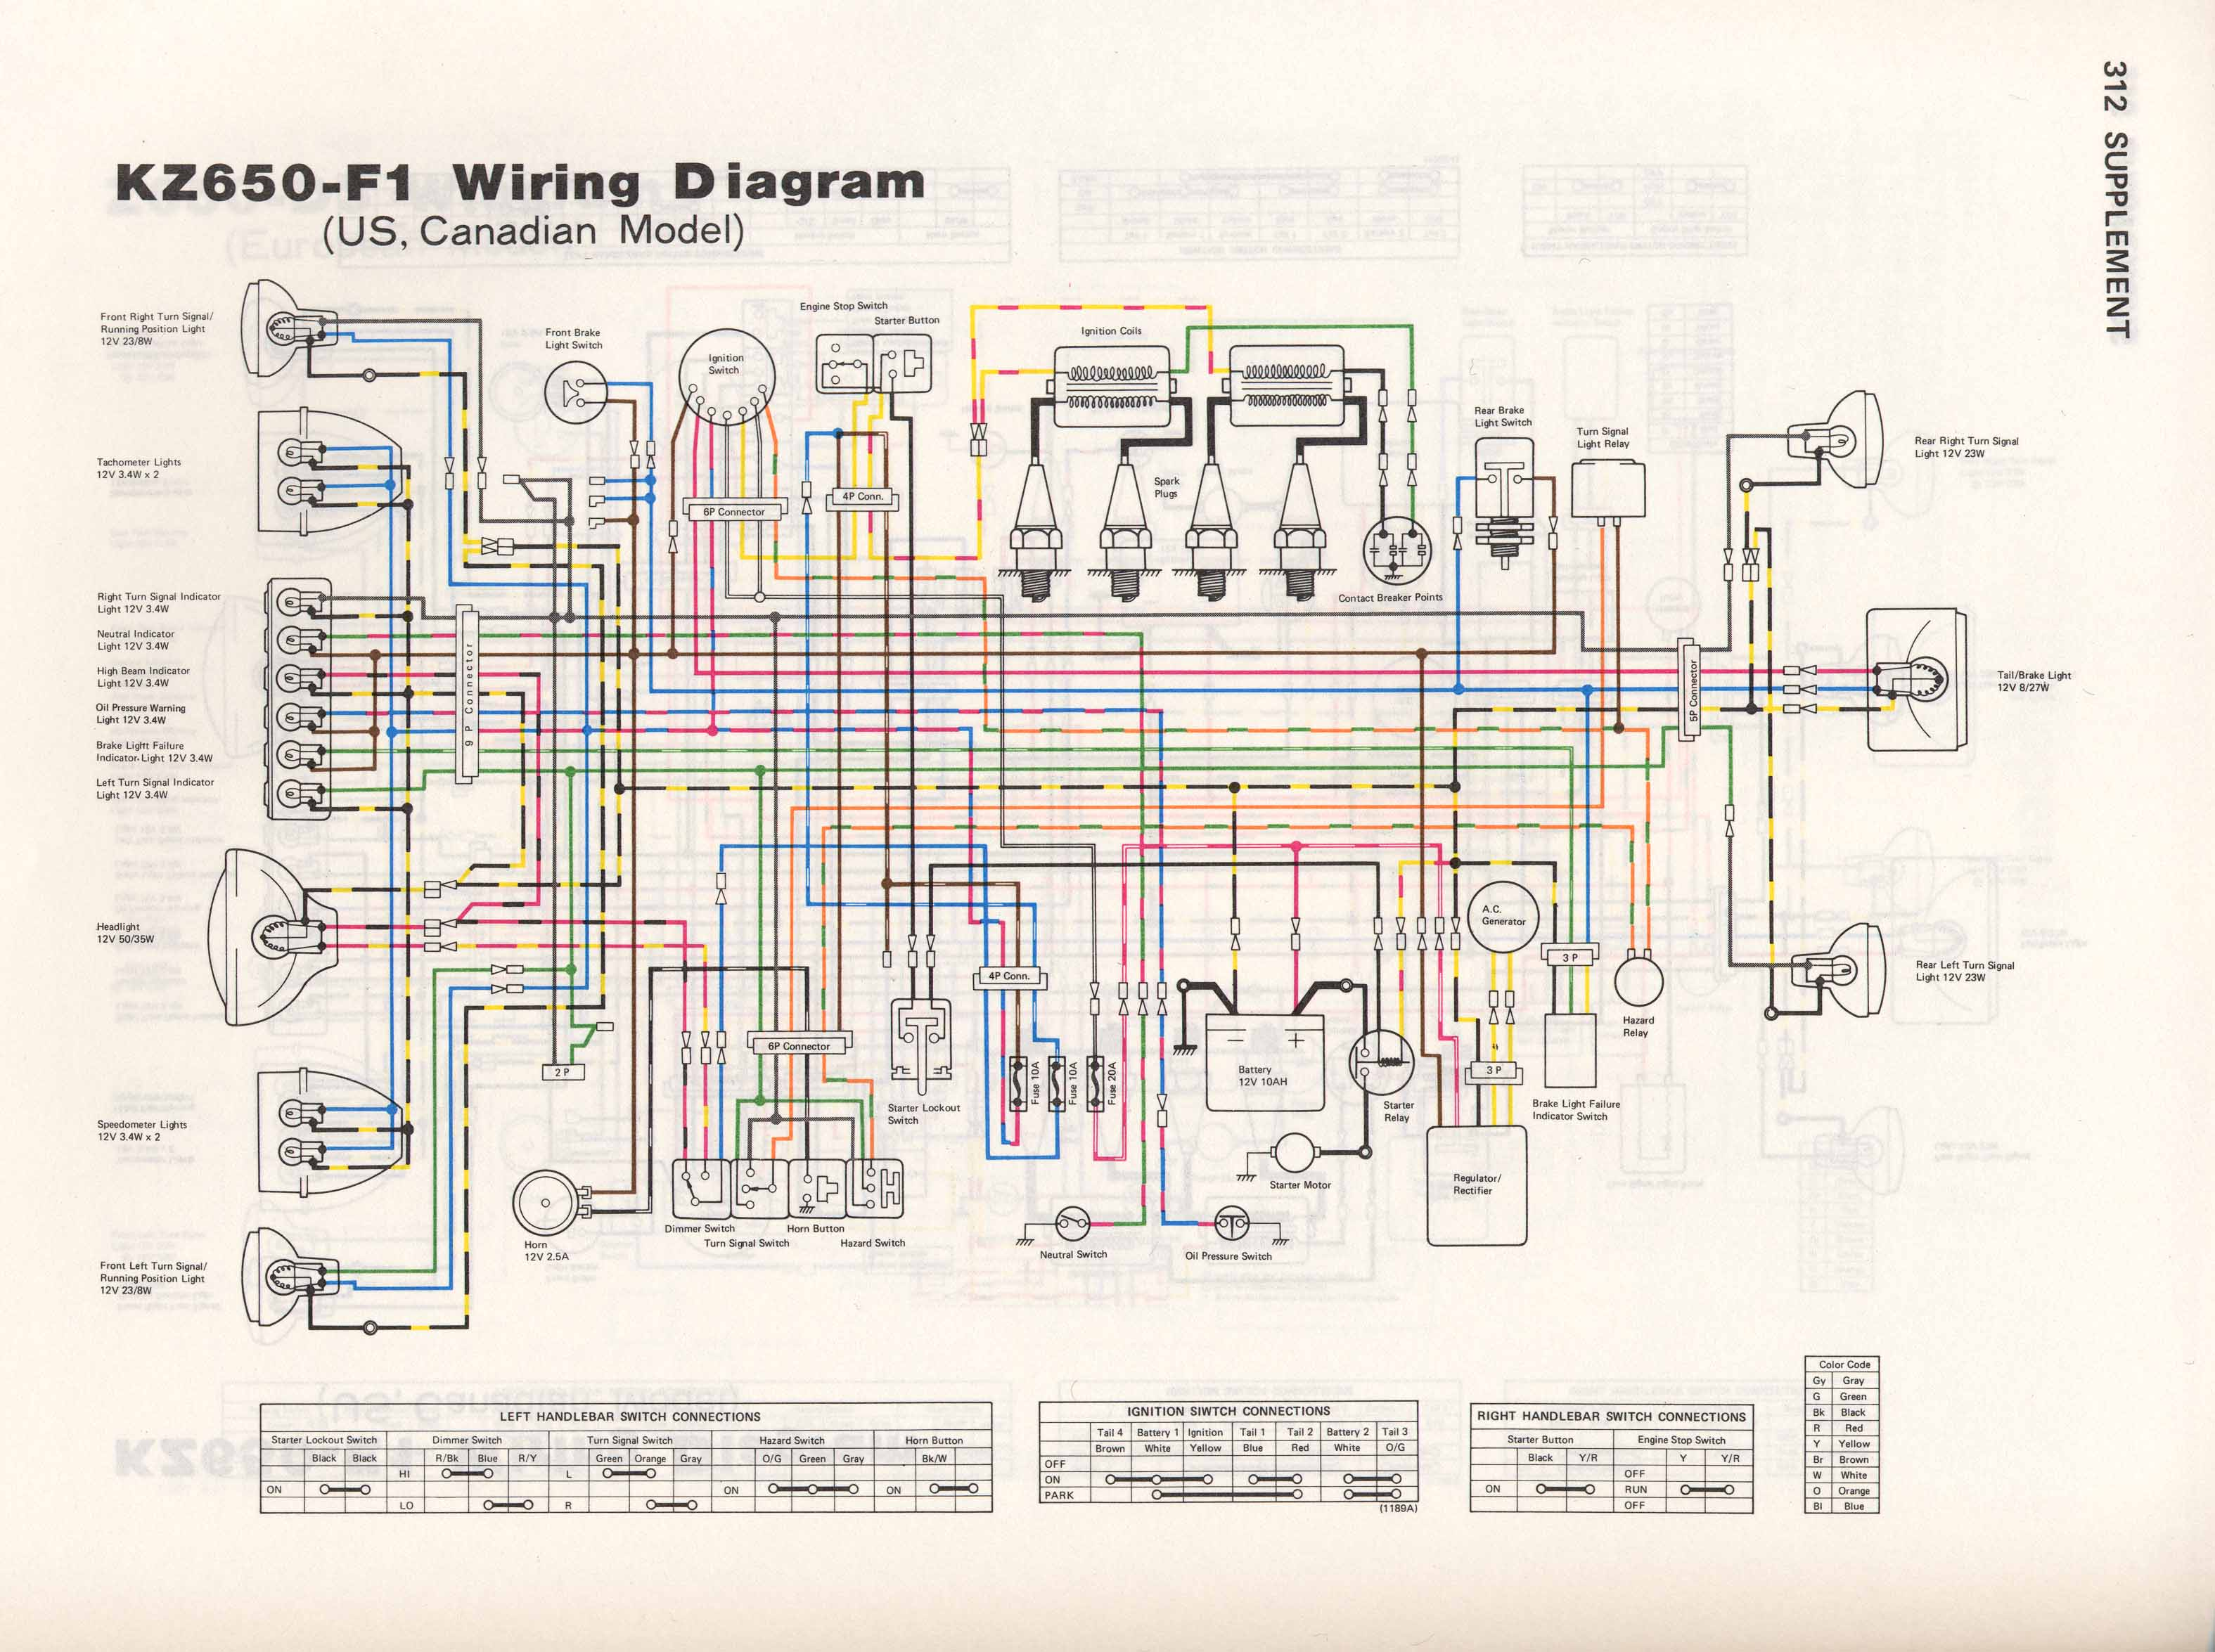 KZ650 F1 kz650 info wiring diagrams 1980 kawasaki kz750 wiring diagram at virtualis.co